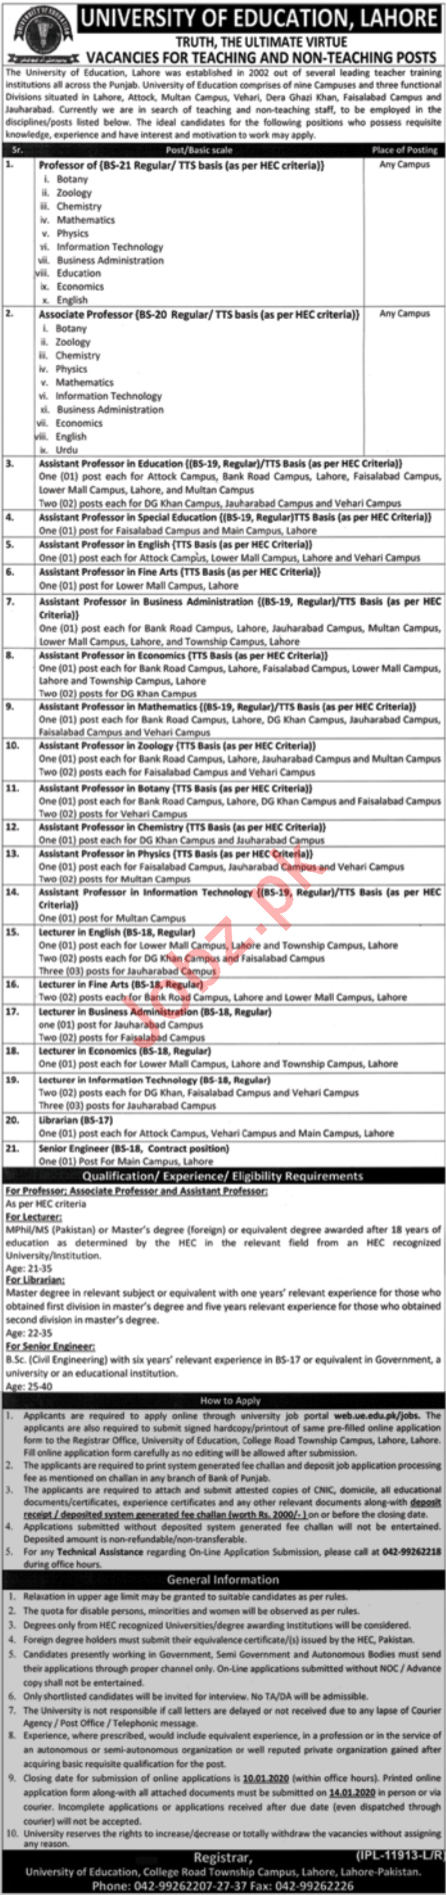 University of Education Jobs 2020 in Lahore